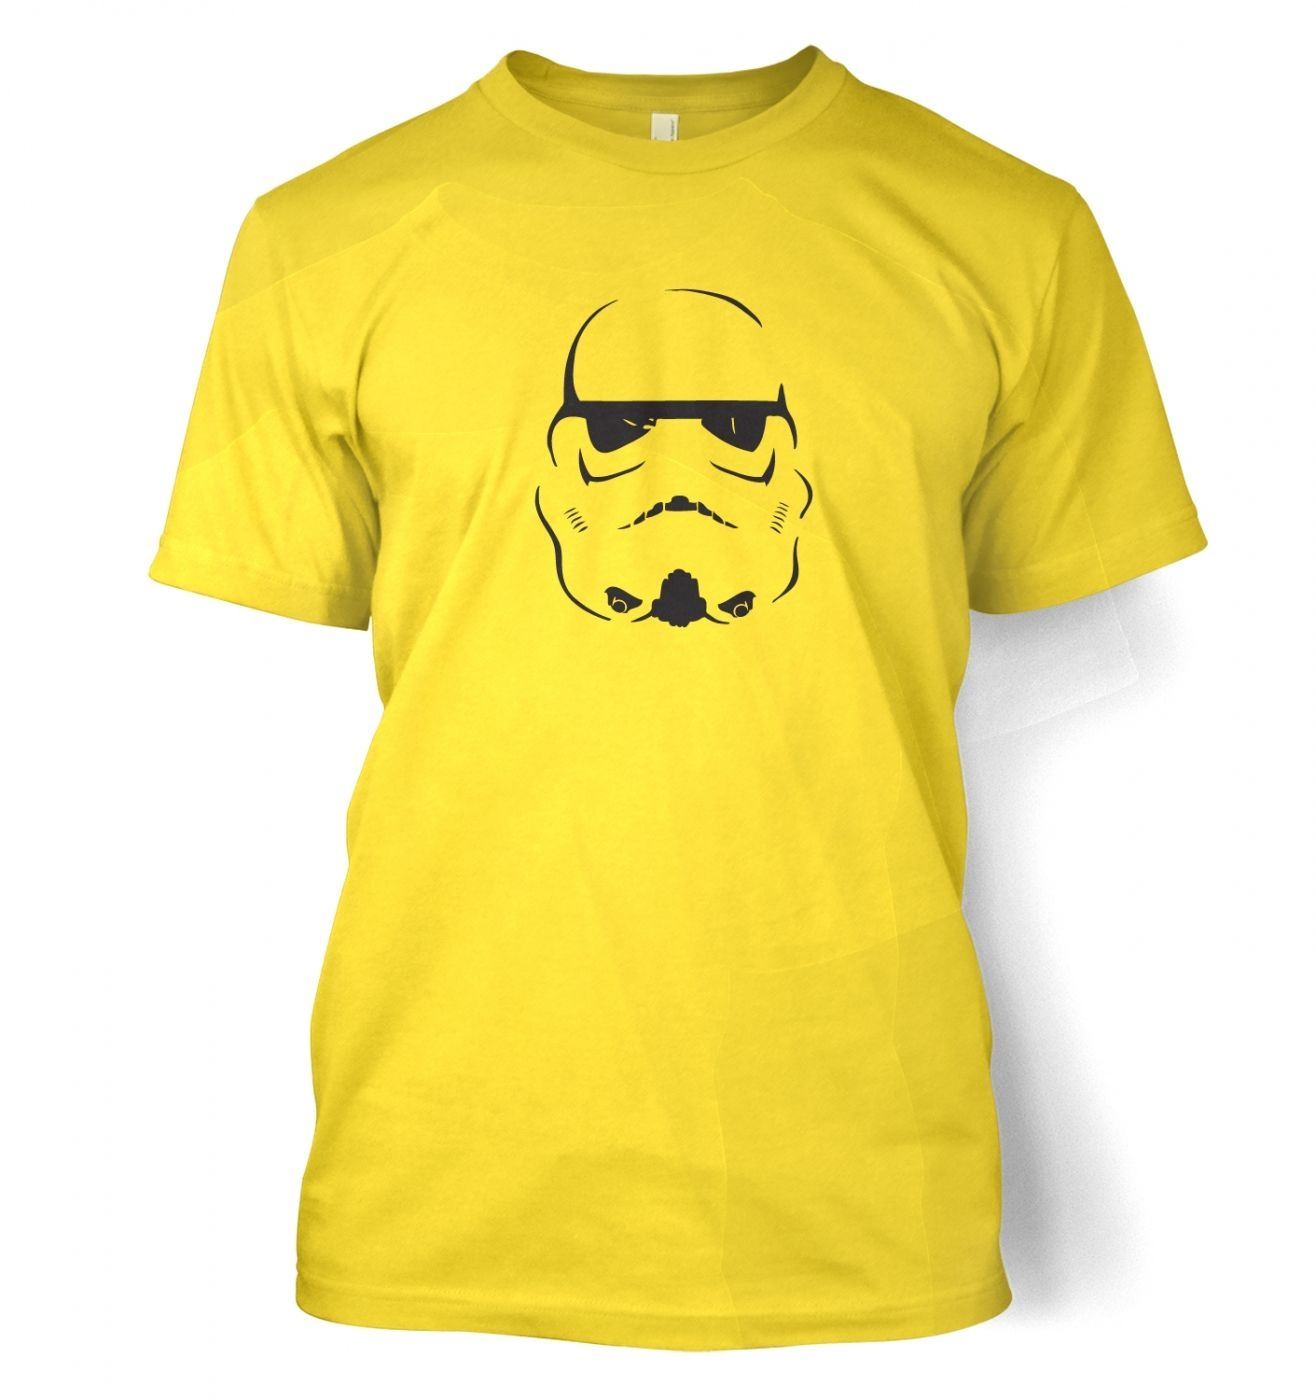 Trooper Helmet T-Shirt - Inspired by Star Wars